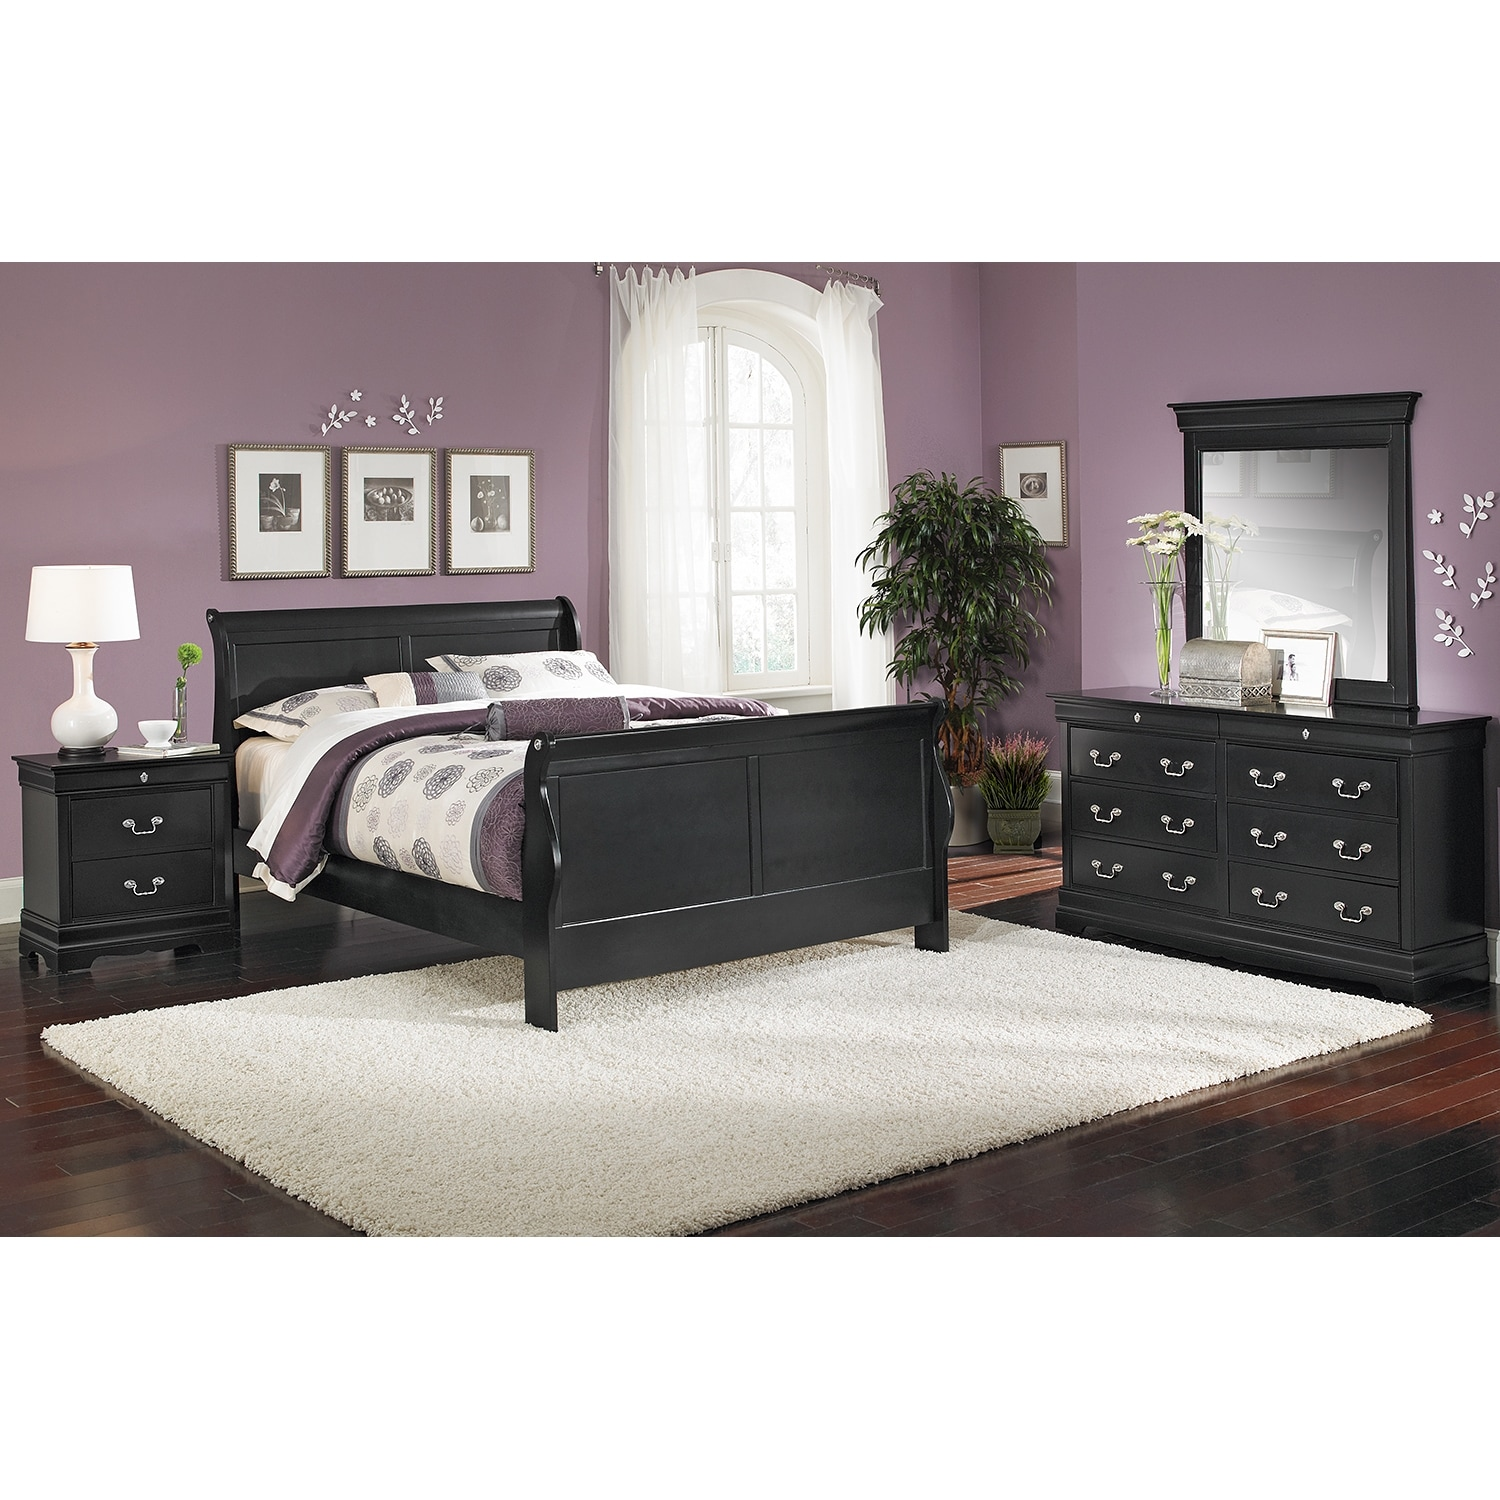 Bedroom Furniture - Neo Classic 6-Piece Queen Bedroom Set - Black